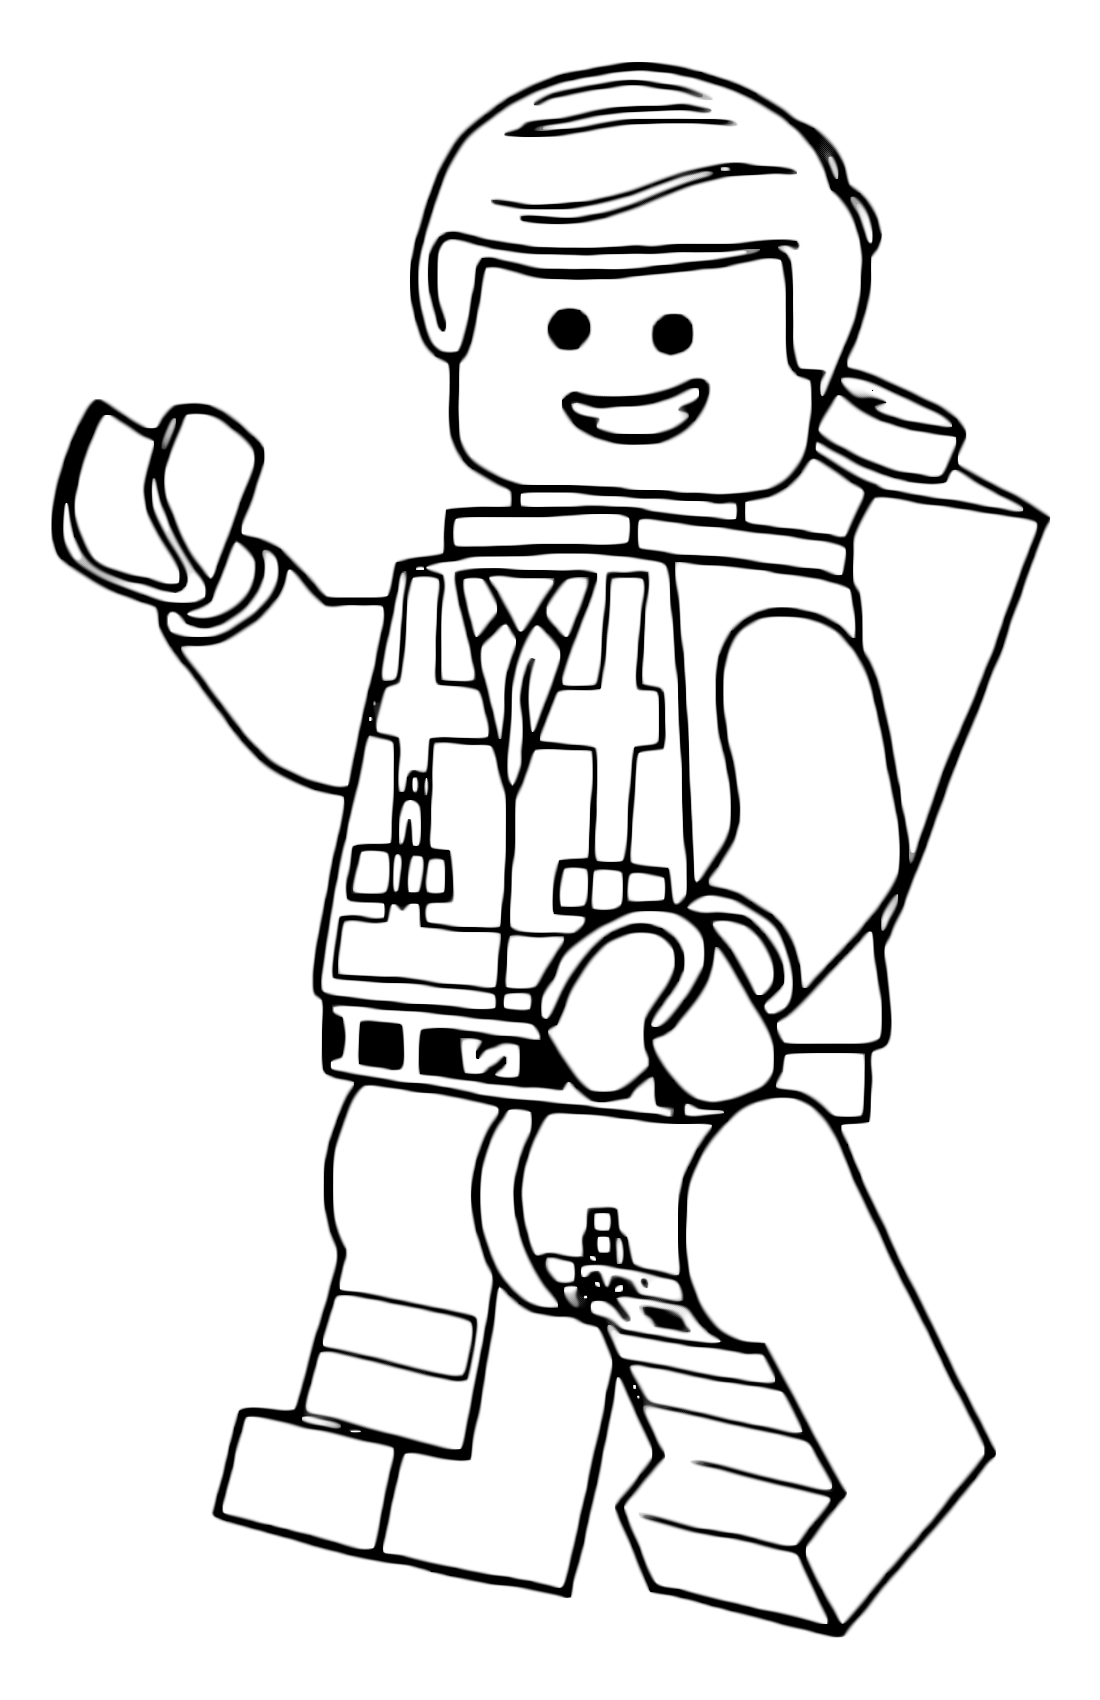 colour by number lego lego ninjago 70755 coloring sheet lego coloring sheets number by lego colour